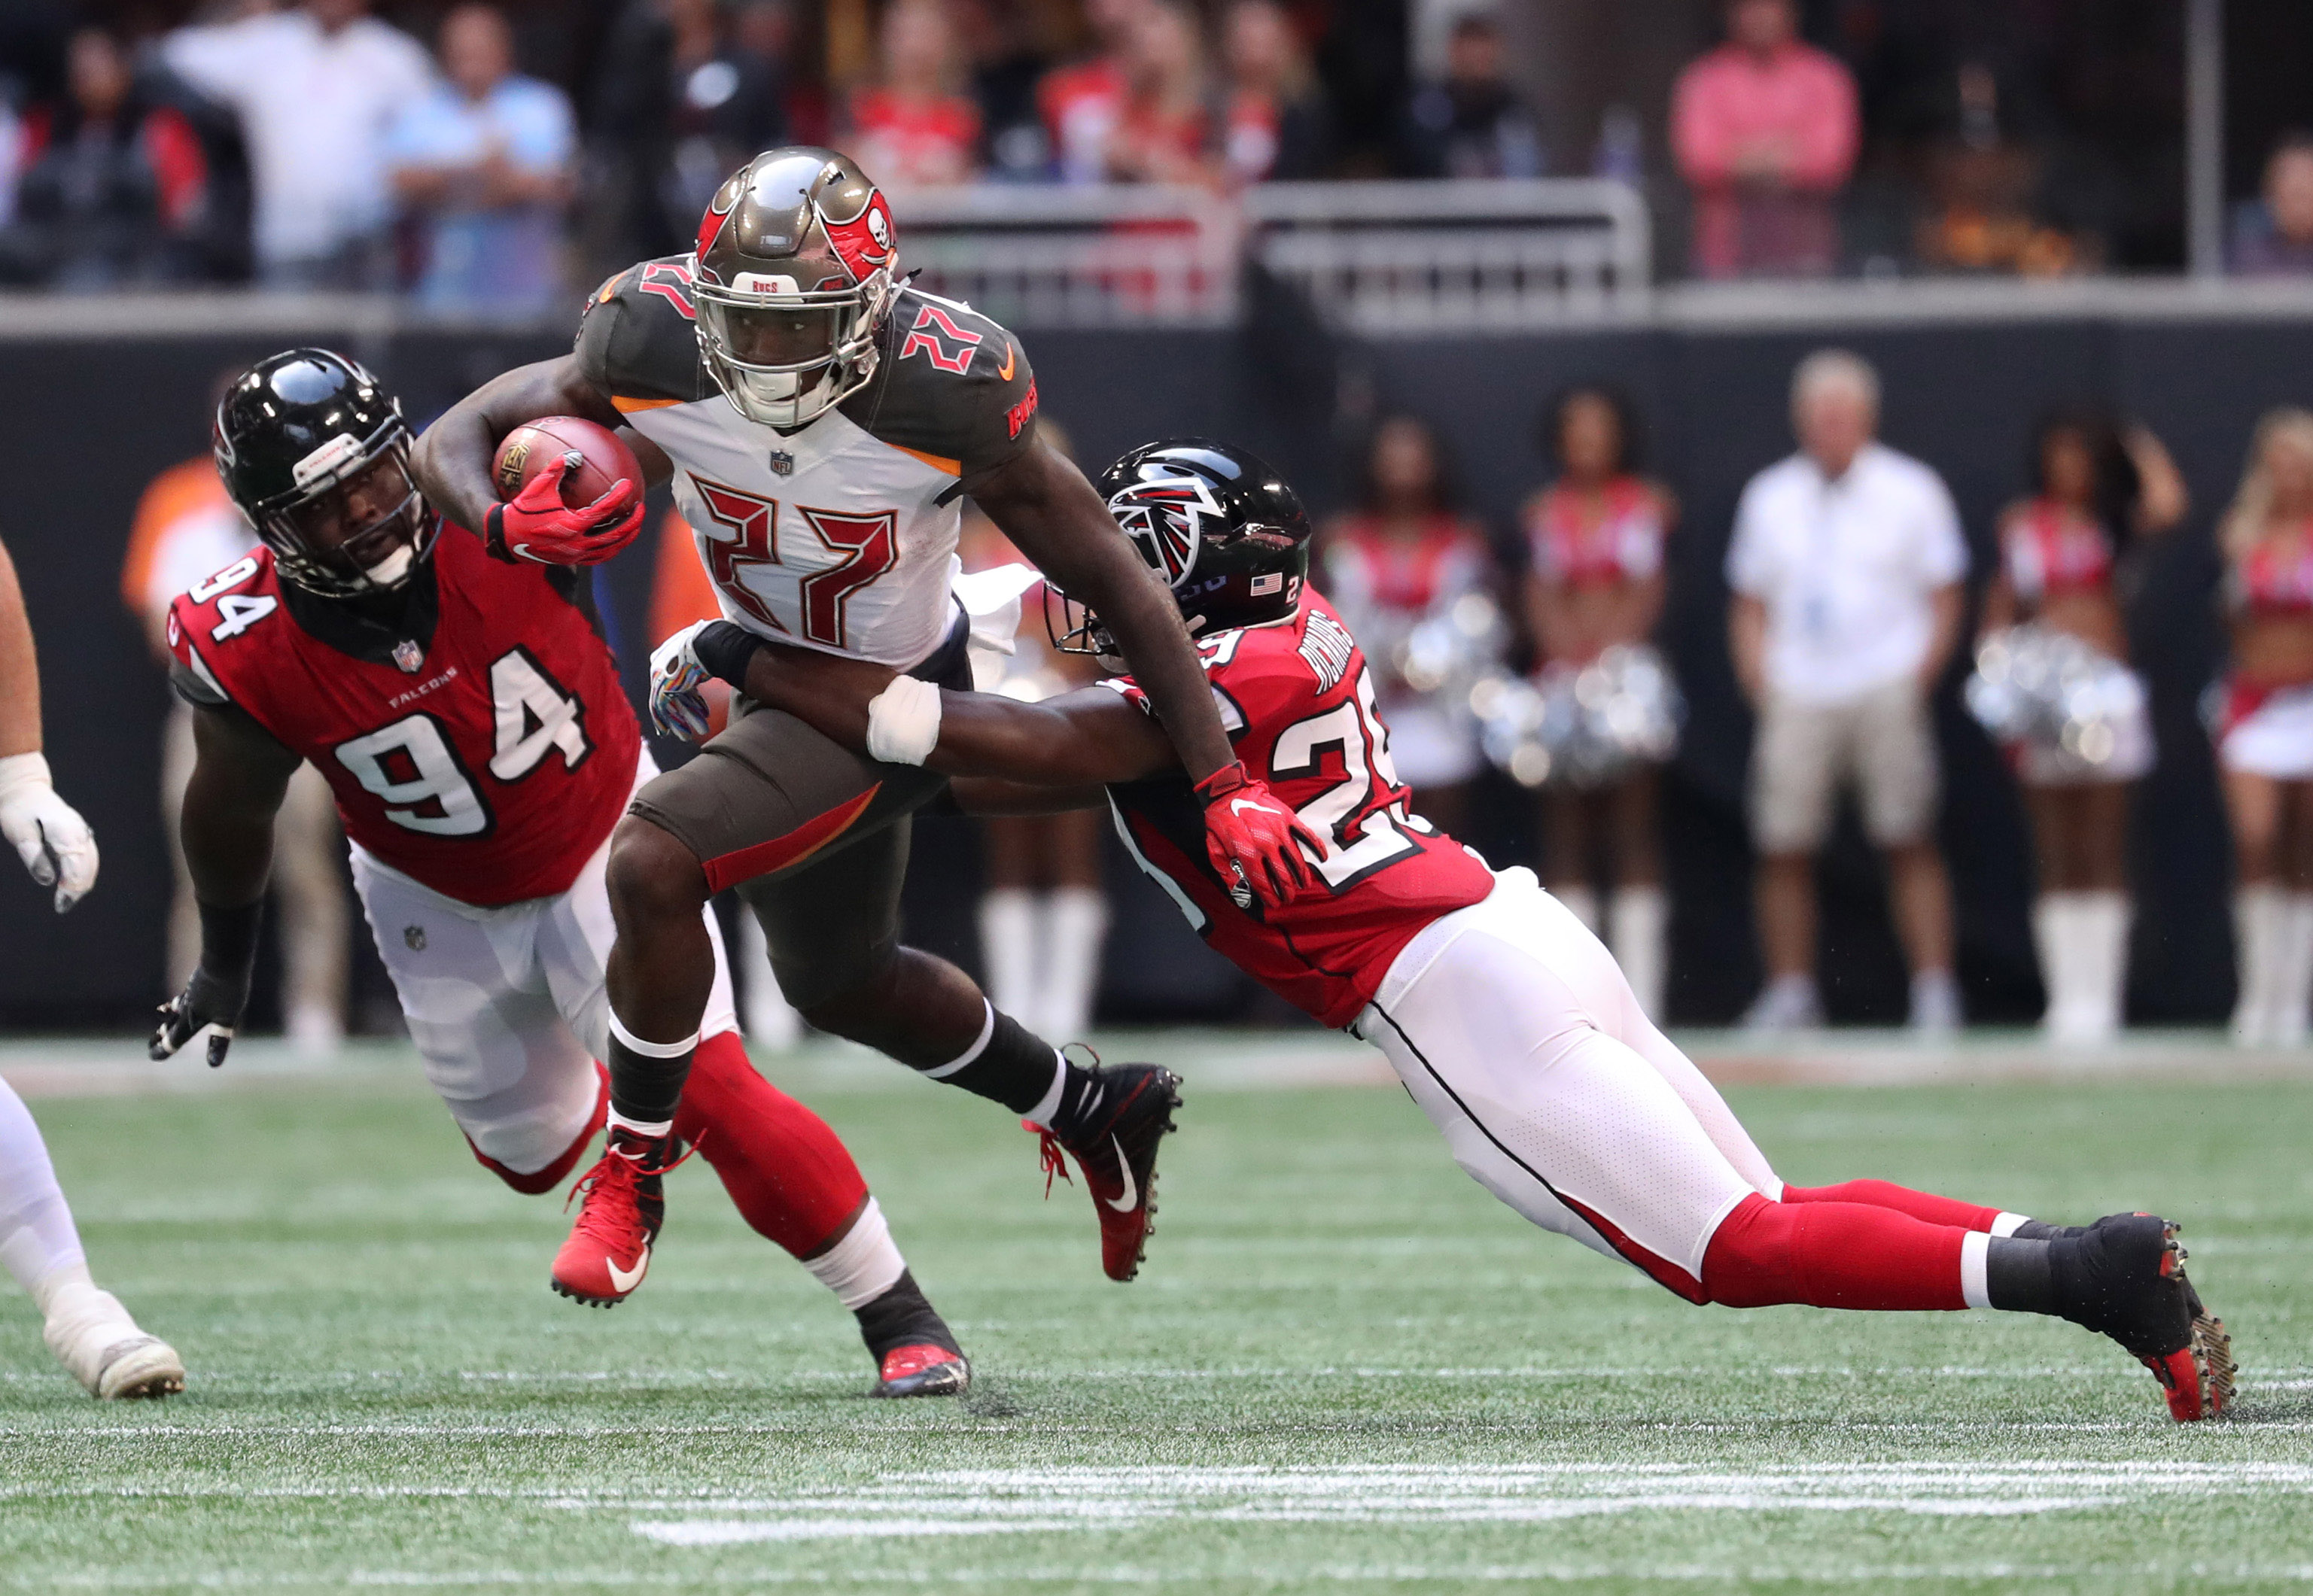 NFL: Tampa Bay Buccaneers at Atlanta Falcons